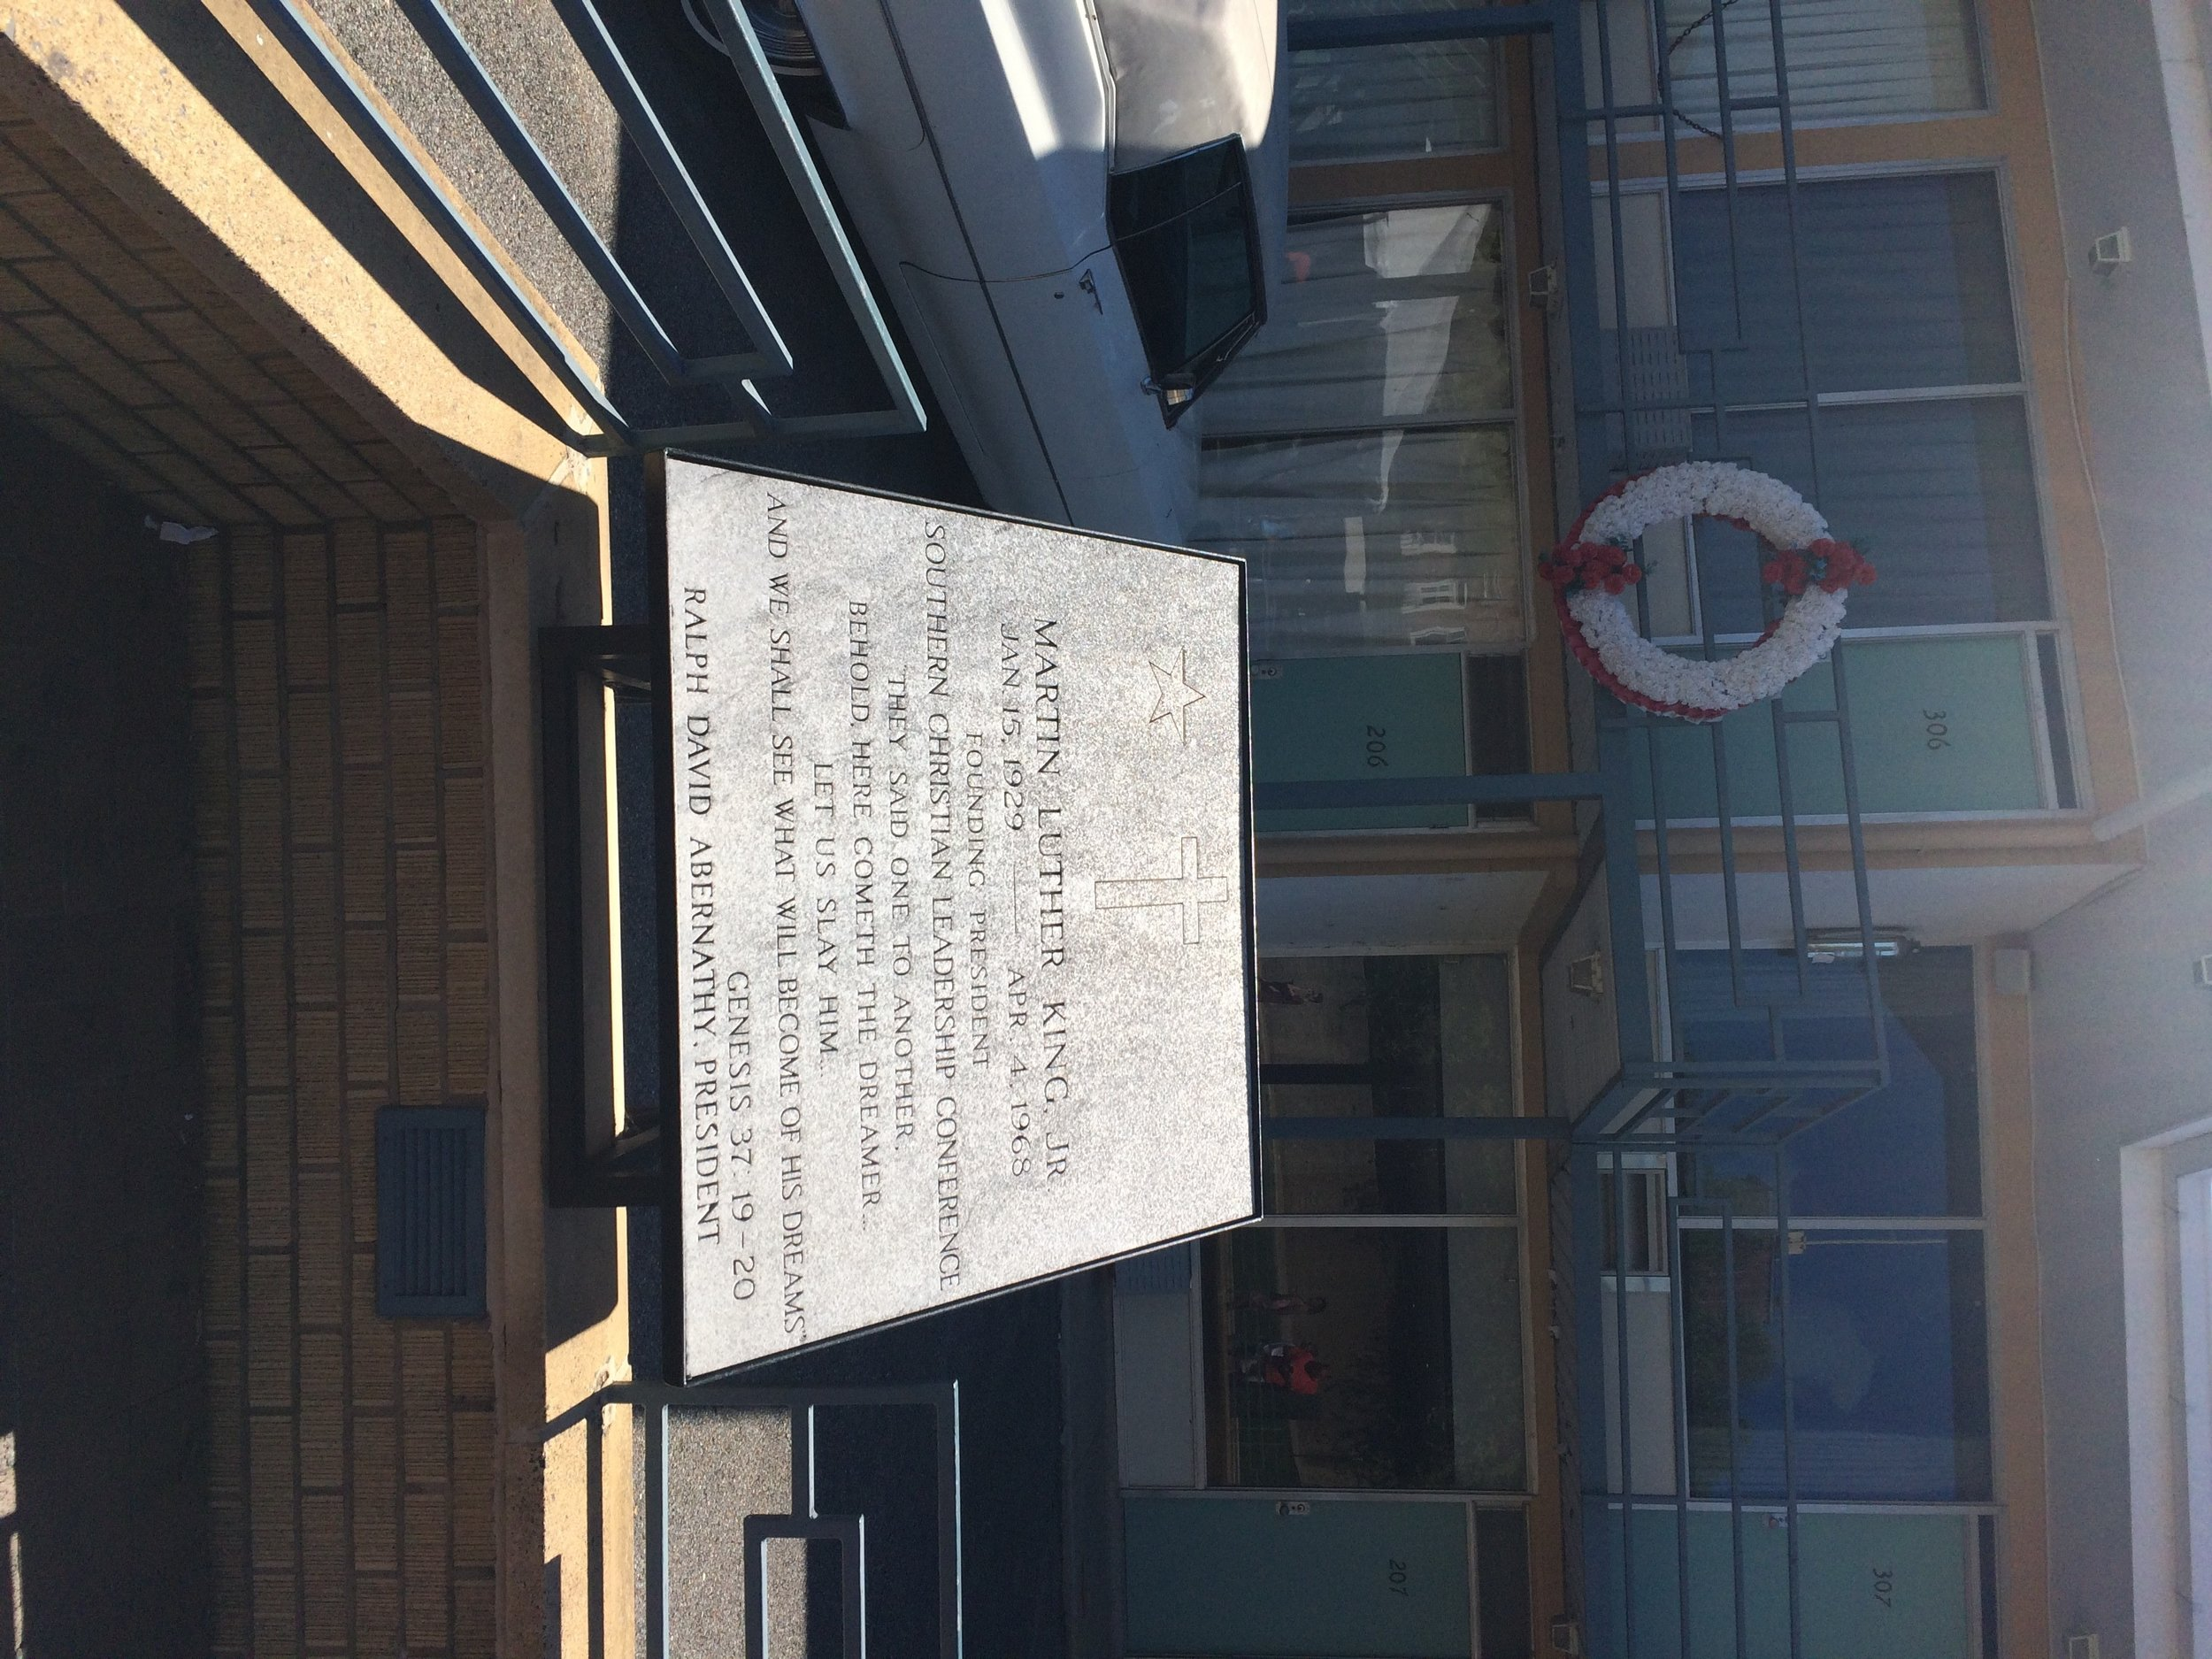 a picture of the memorial and wreath dedicated to Martin Luther King Jr at the National Civil Rights Museum at the Lorraine Motel in Memphis